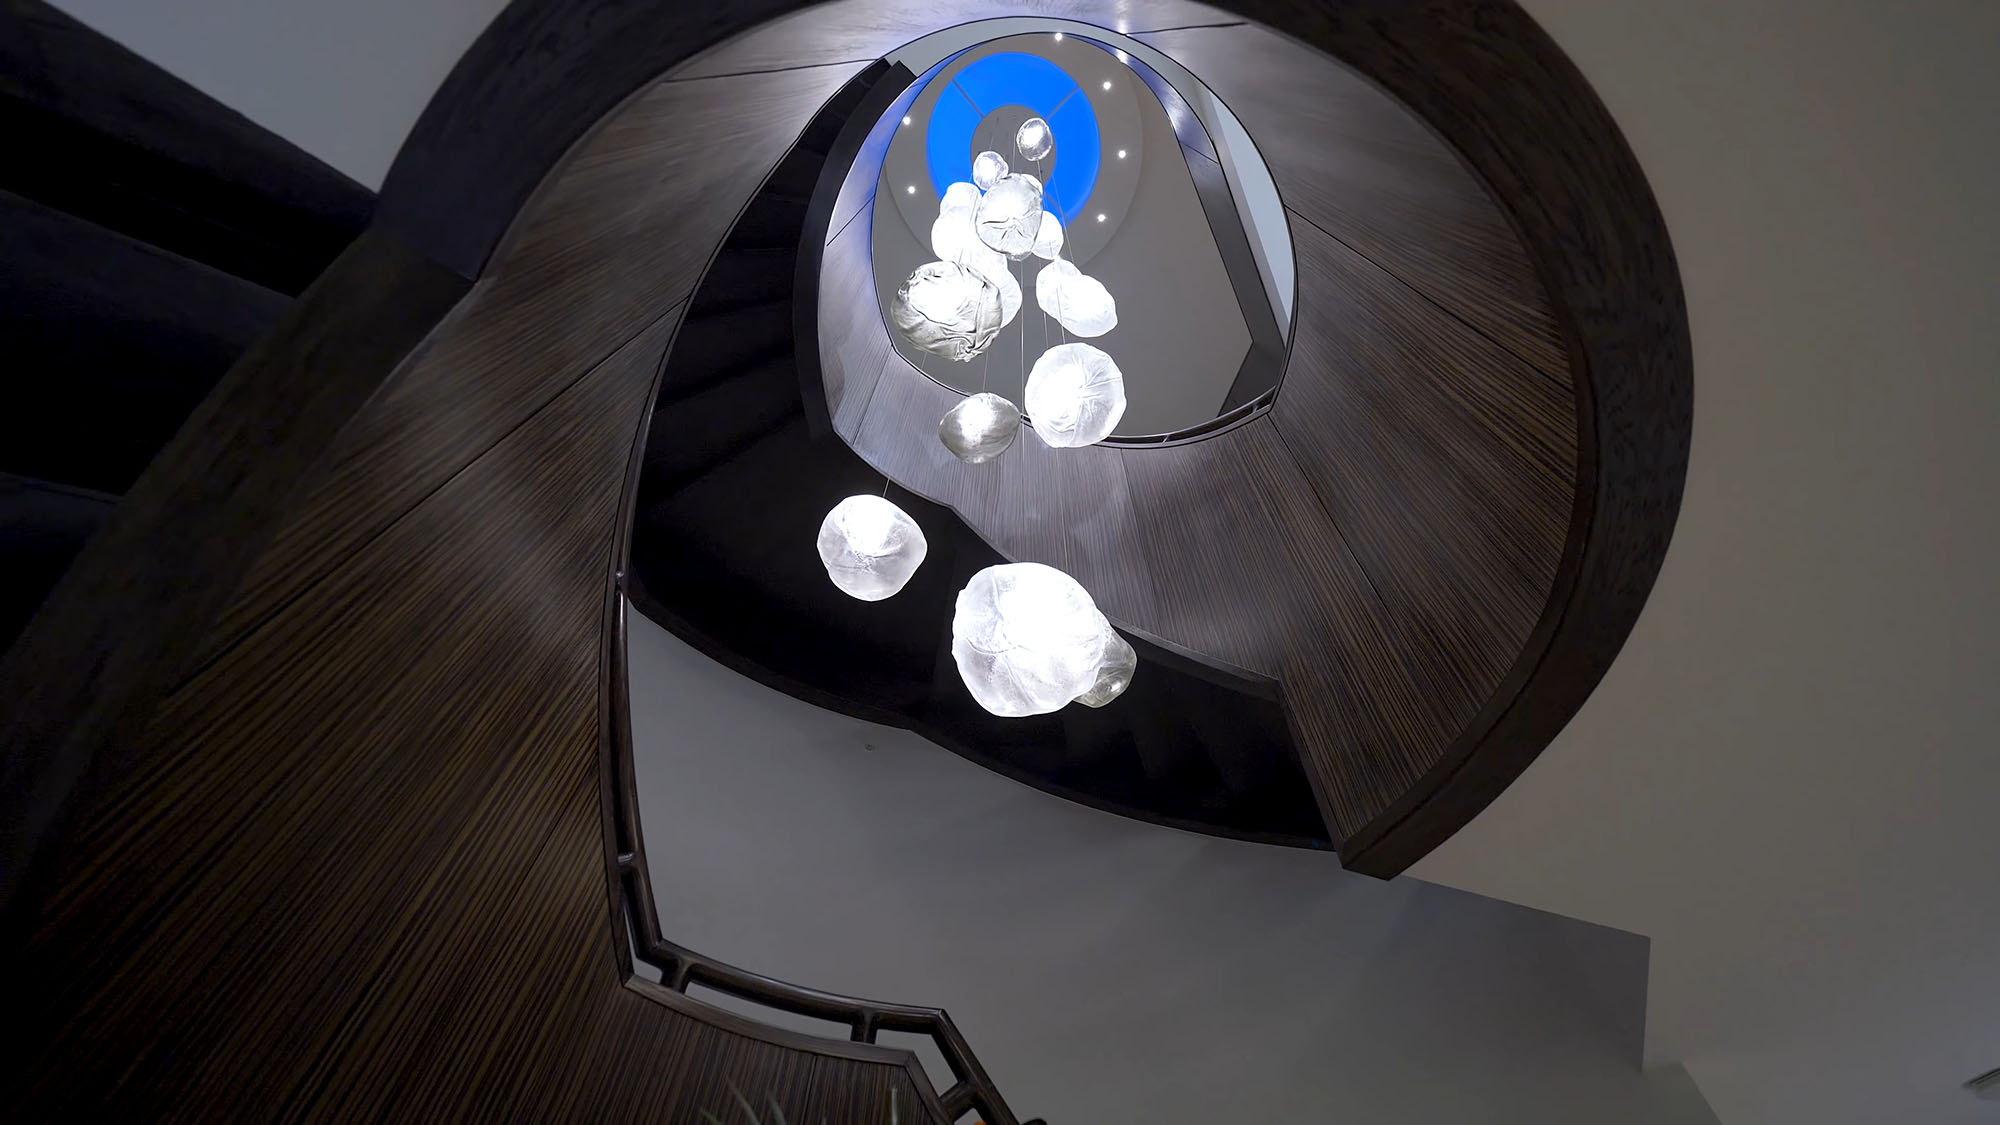 Grounds eye view of a curved modern staircase with chandelier and dome skylight.